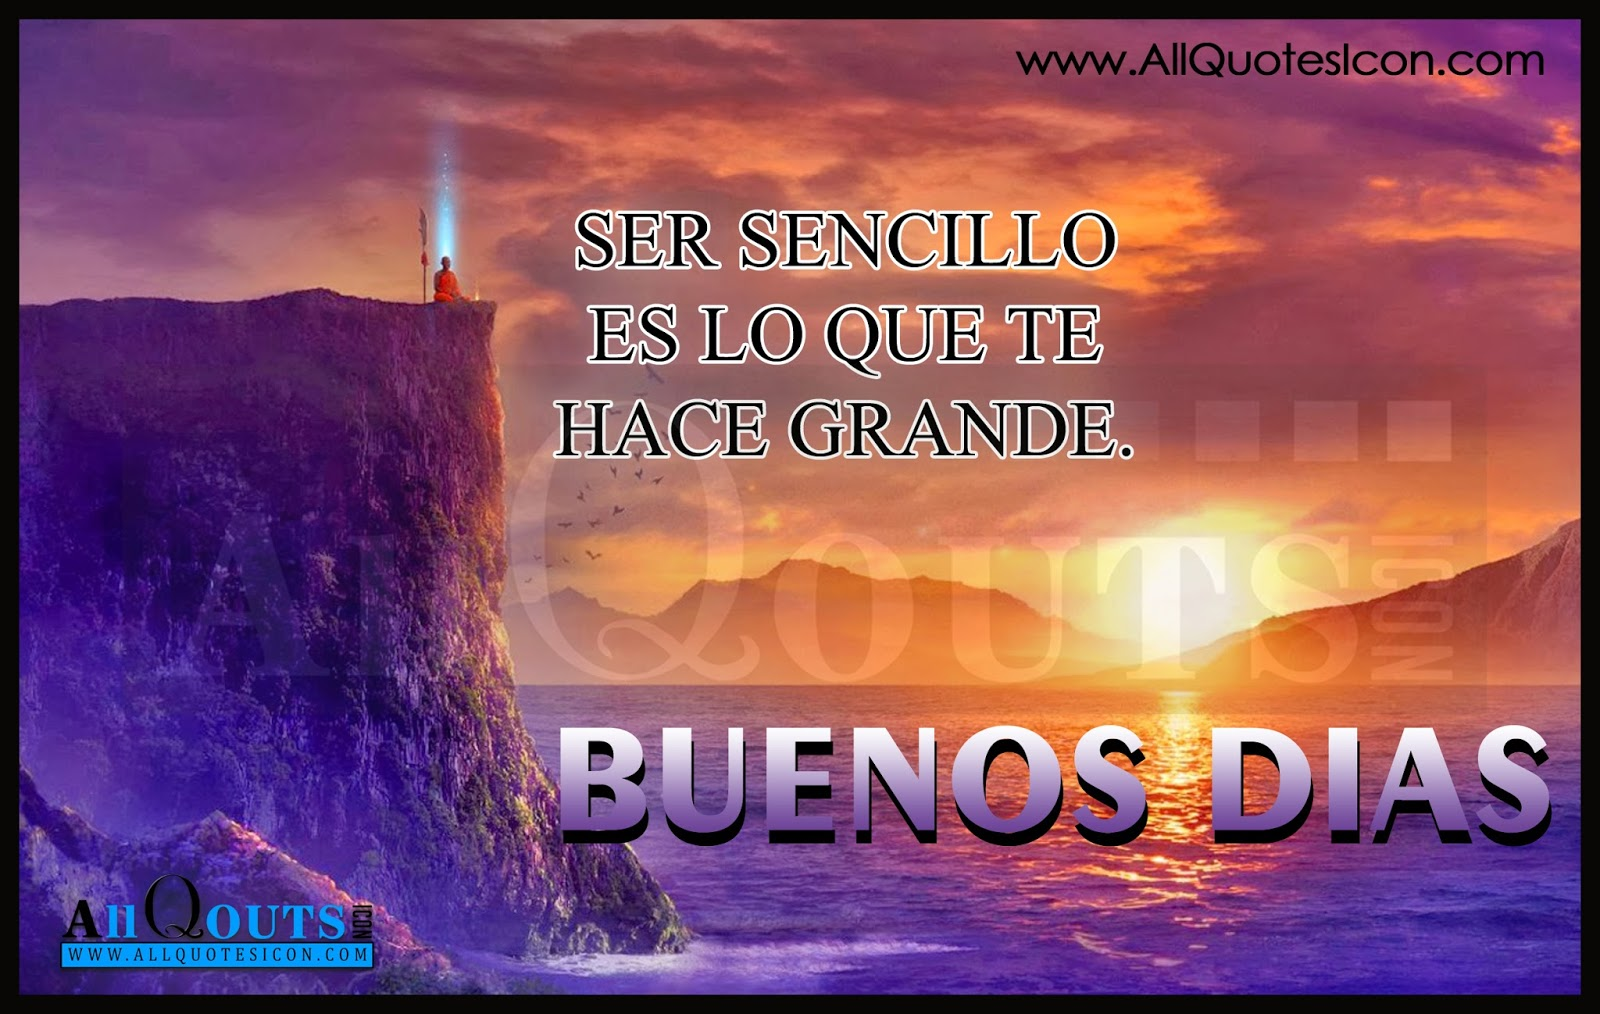 Cute Good Morning Quotes In Spanish : Spanish good morning thoughts and images